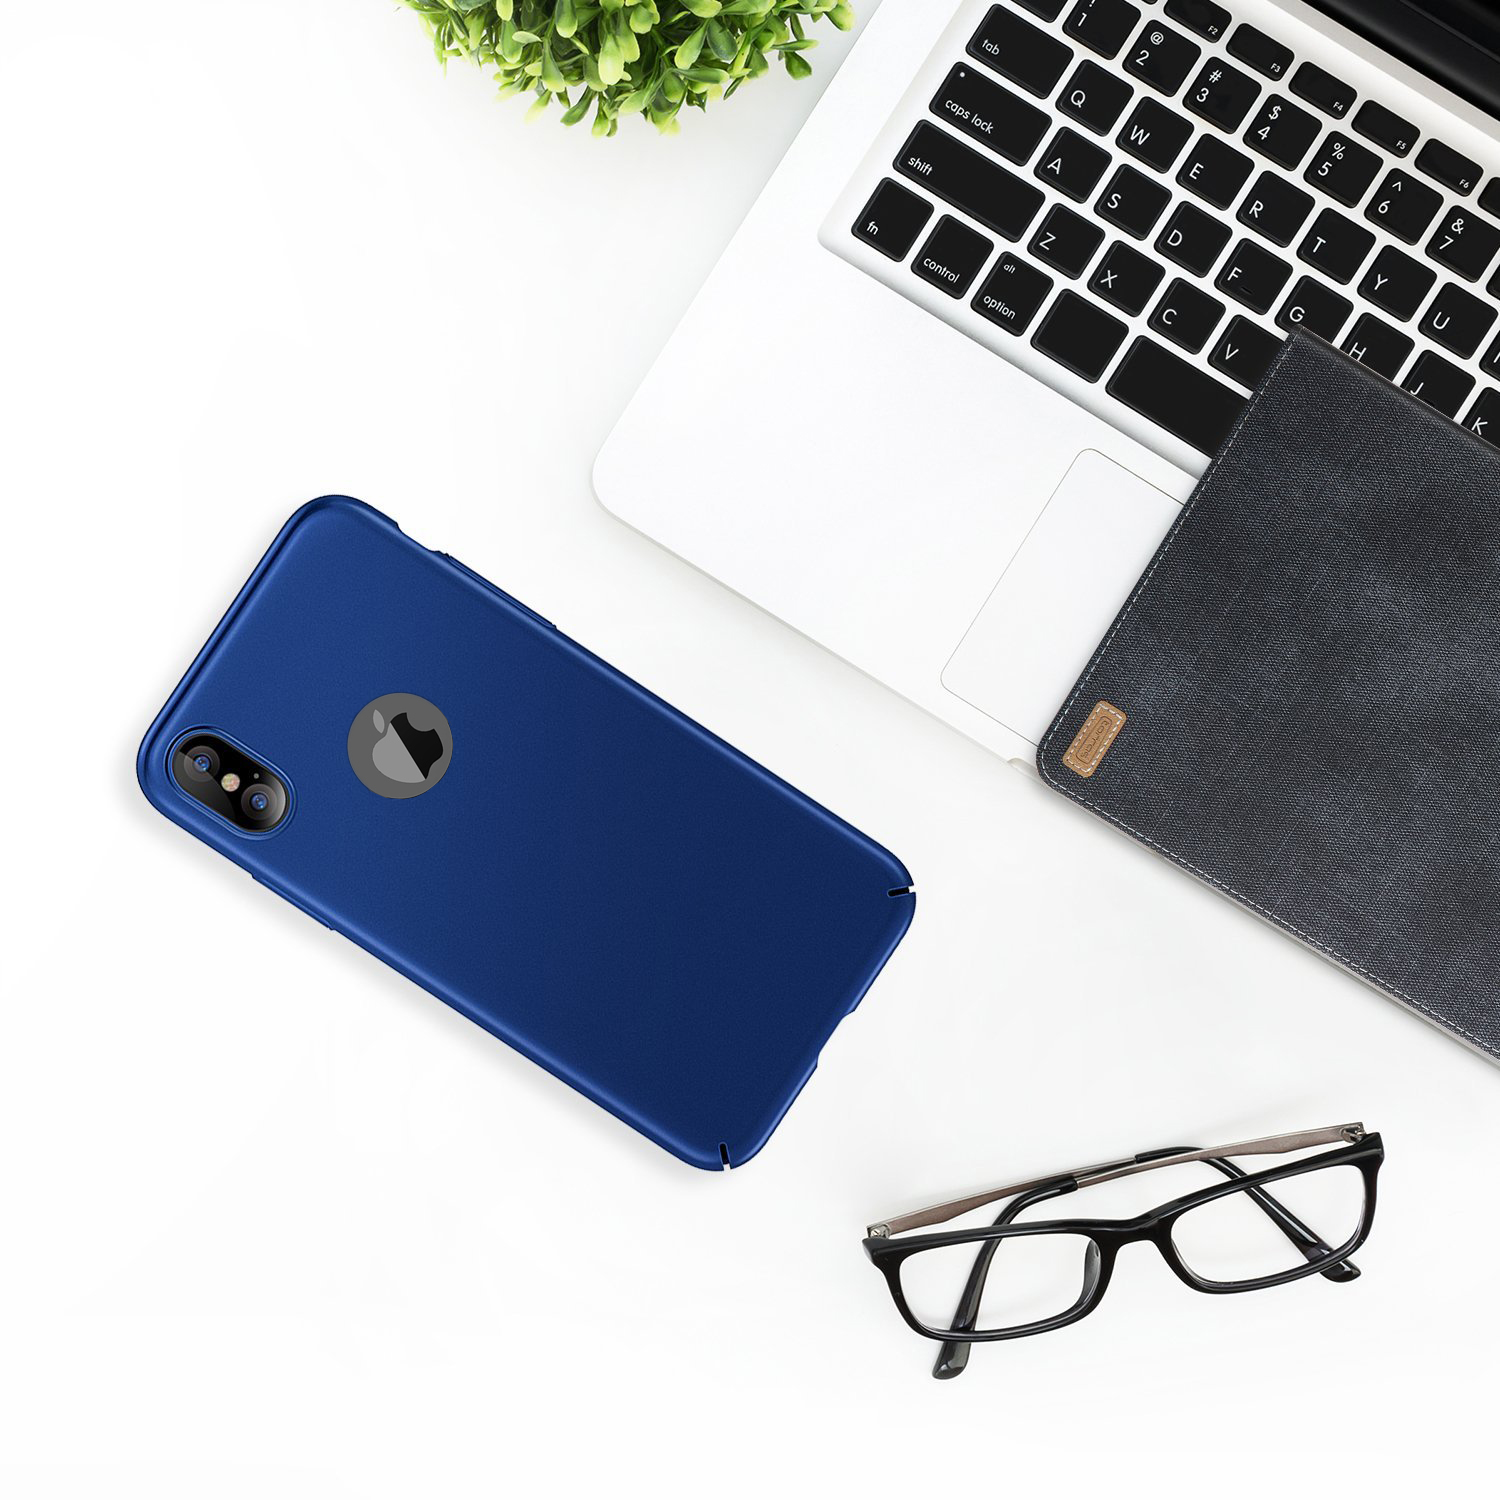 Shockproof-Hard-Back-Ultra-Thin-Slim-New-Bumper-Case-Cover-For-Apple-iPhone-X-XR miniatuur 52